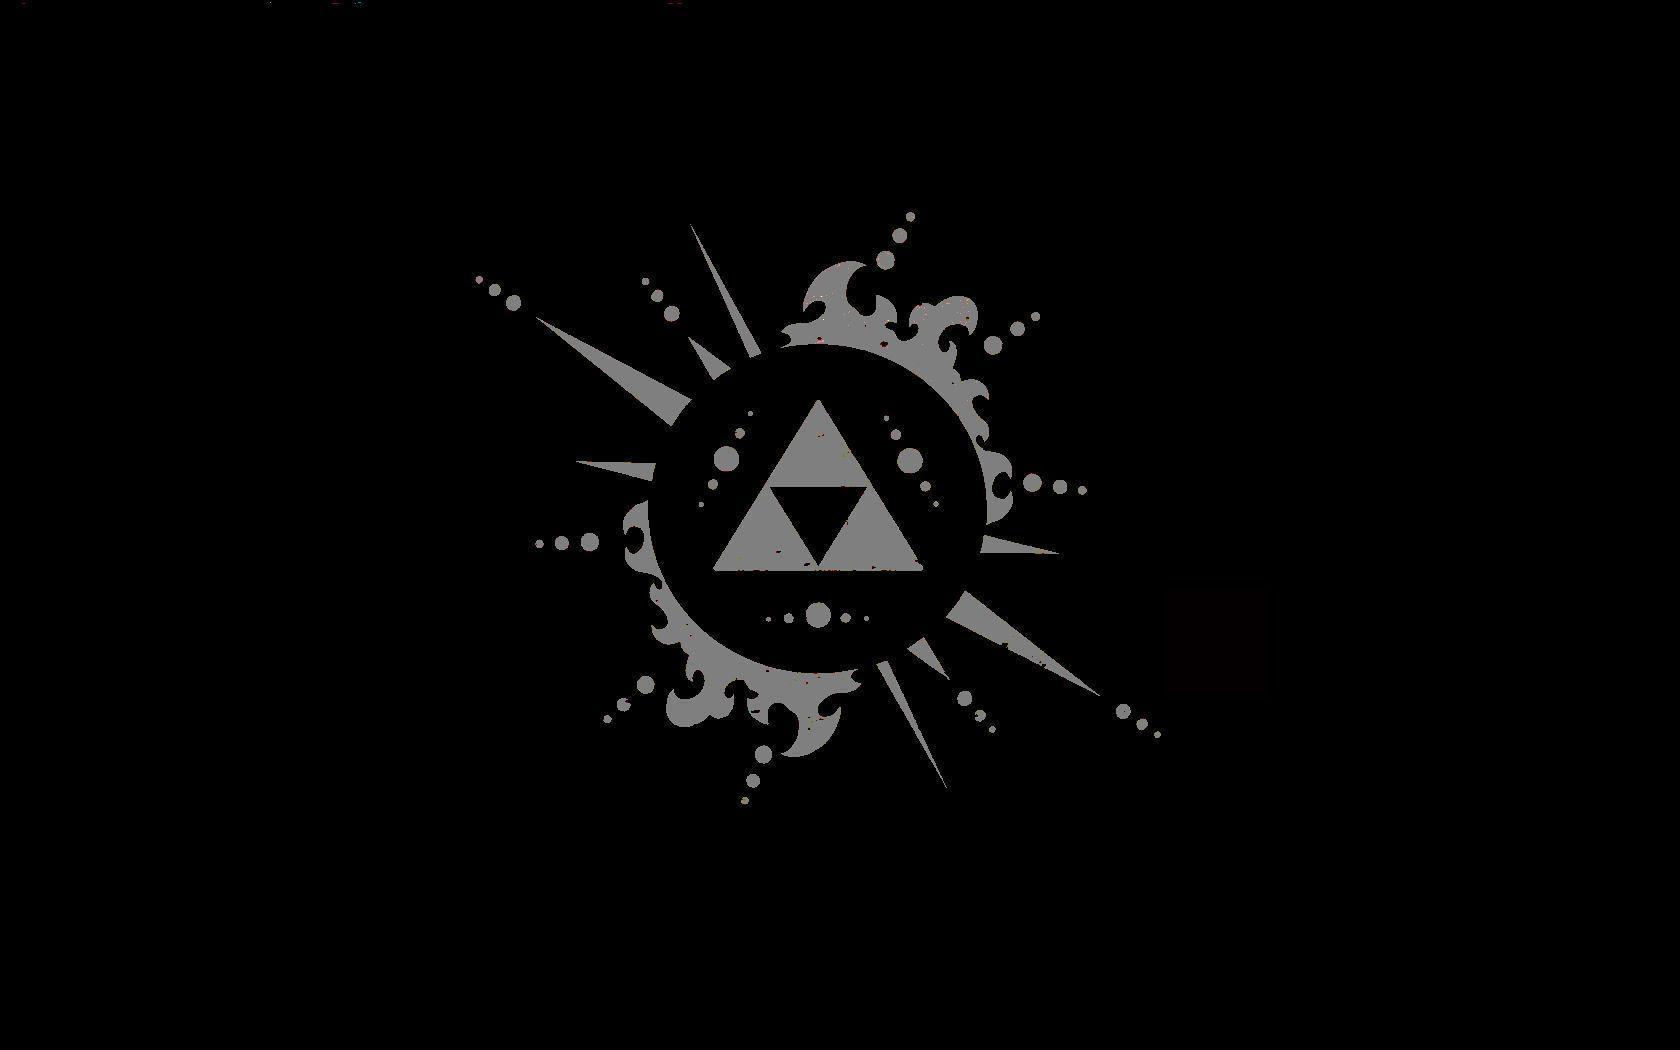 Zelda Triforce Red Decal Car Truck Bumper Window Sticker Pictures